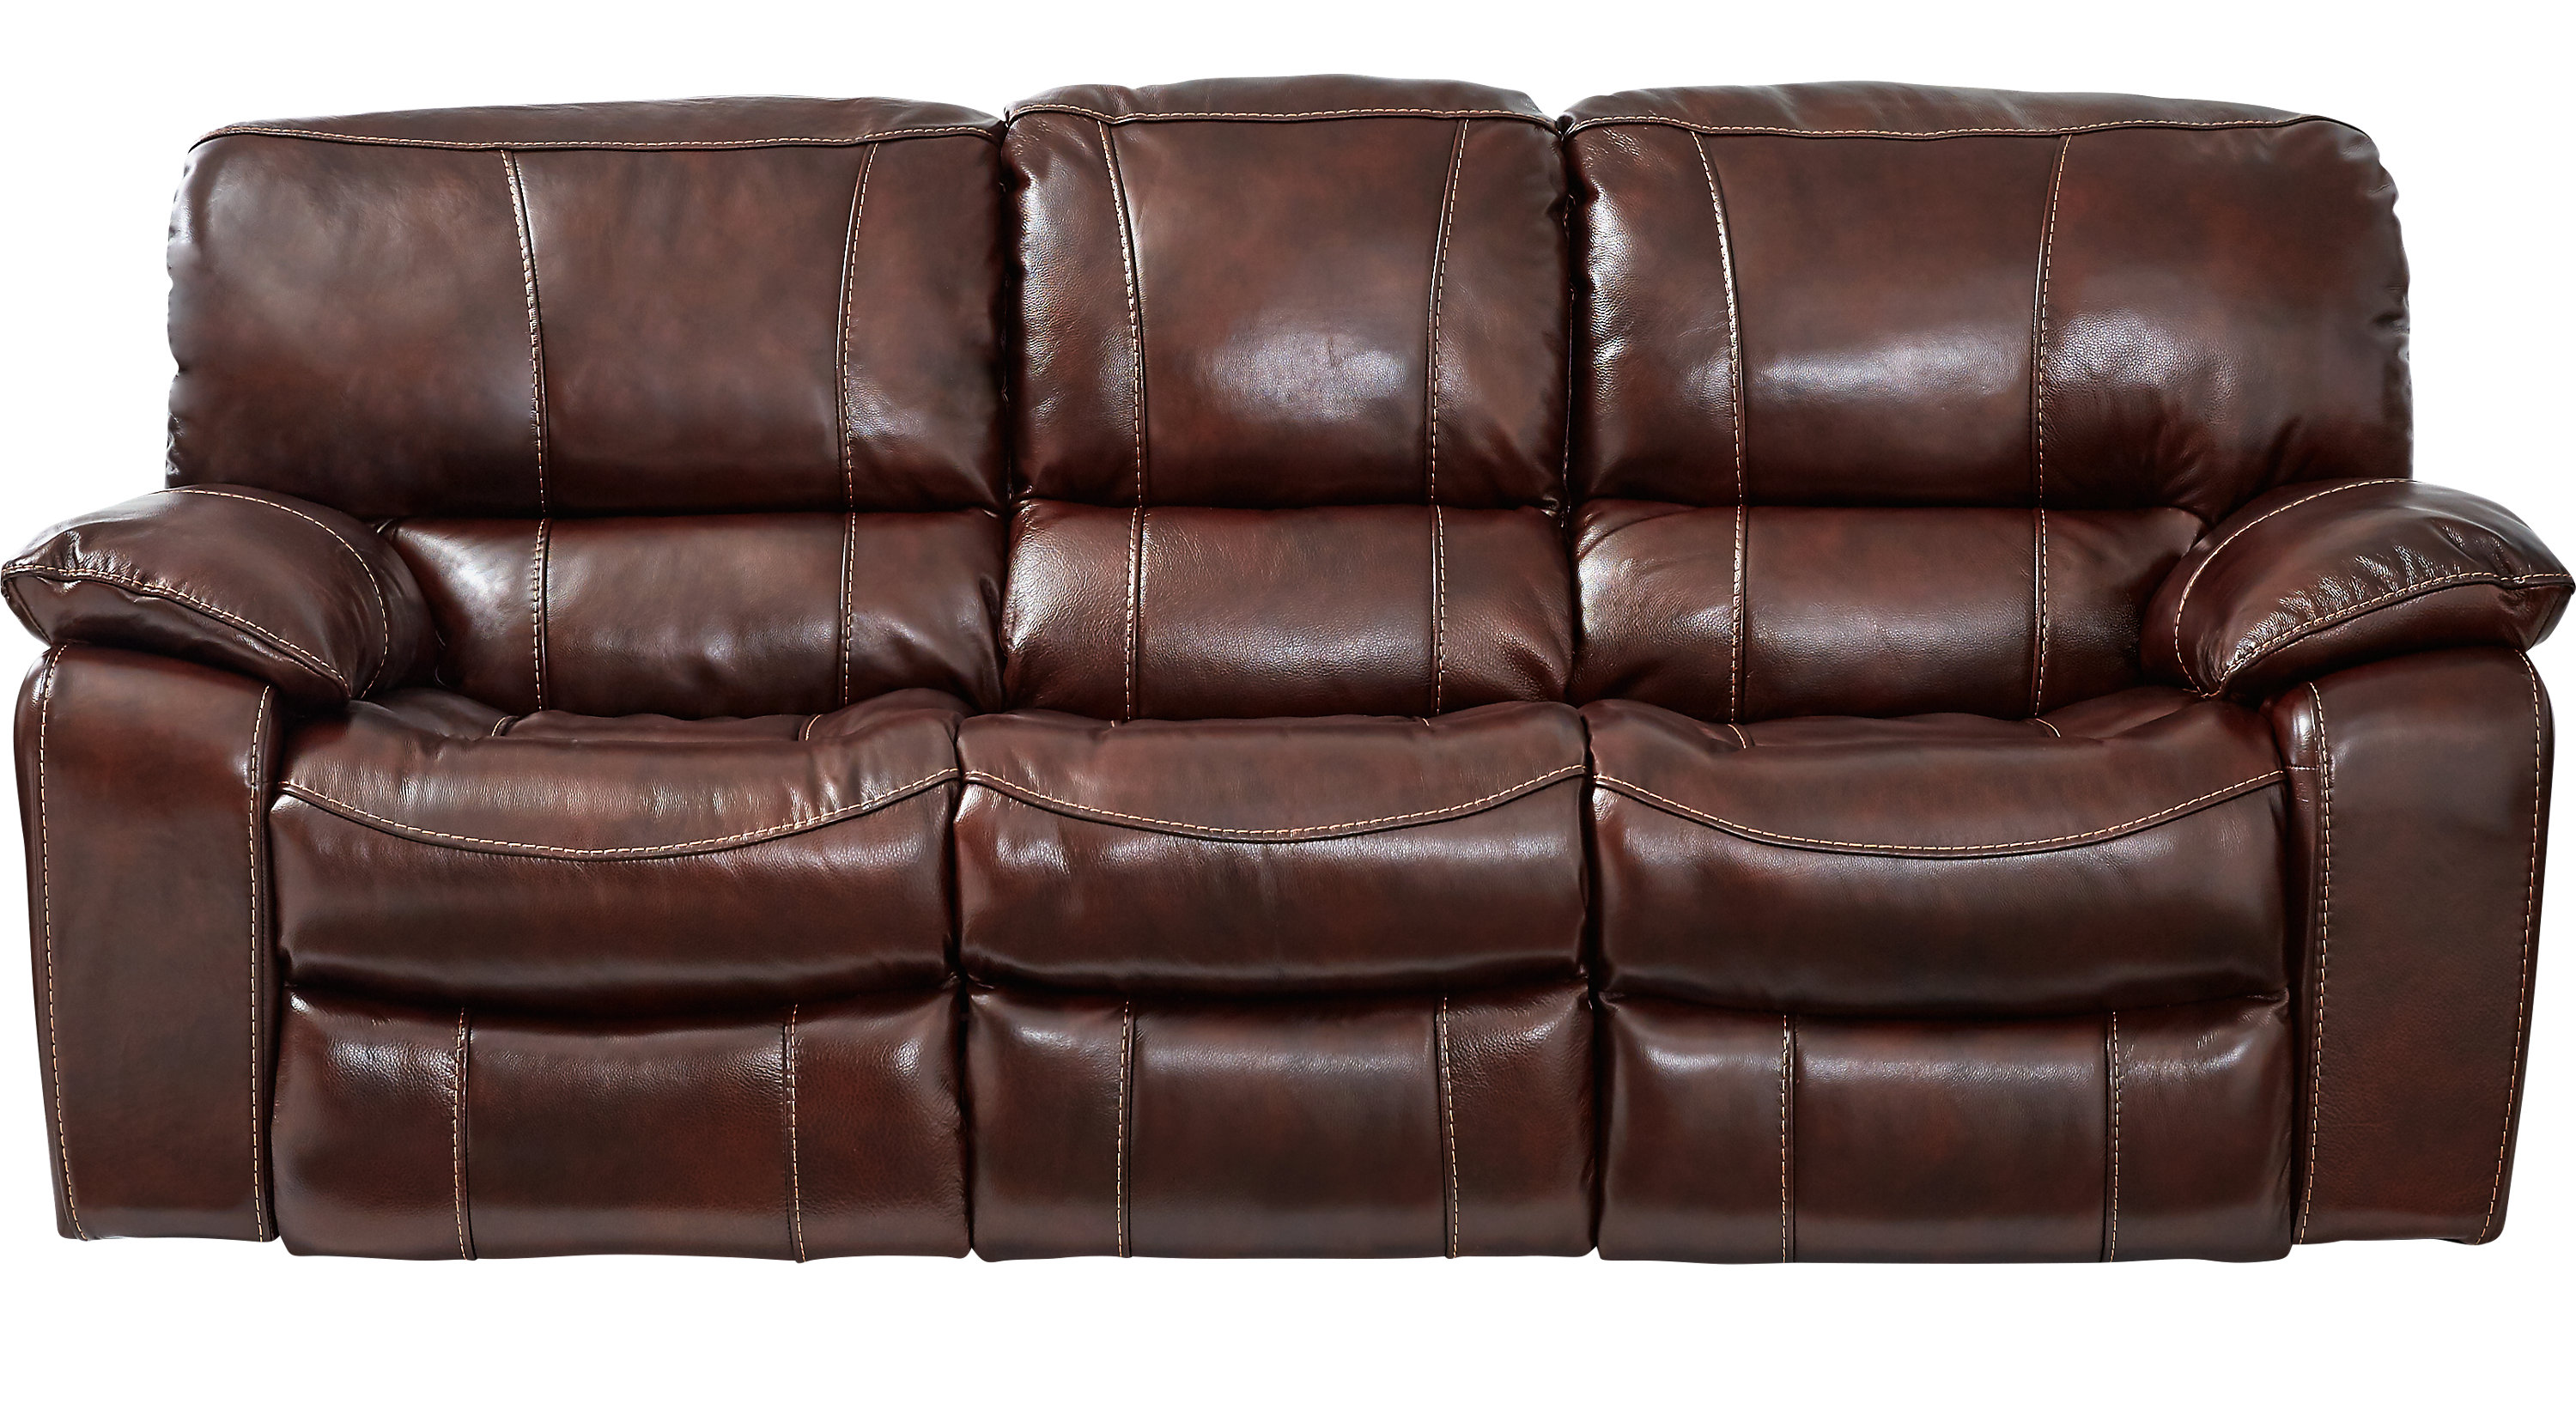 Sanderson Mahogany Leather Reclining Sofa